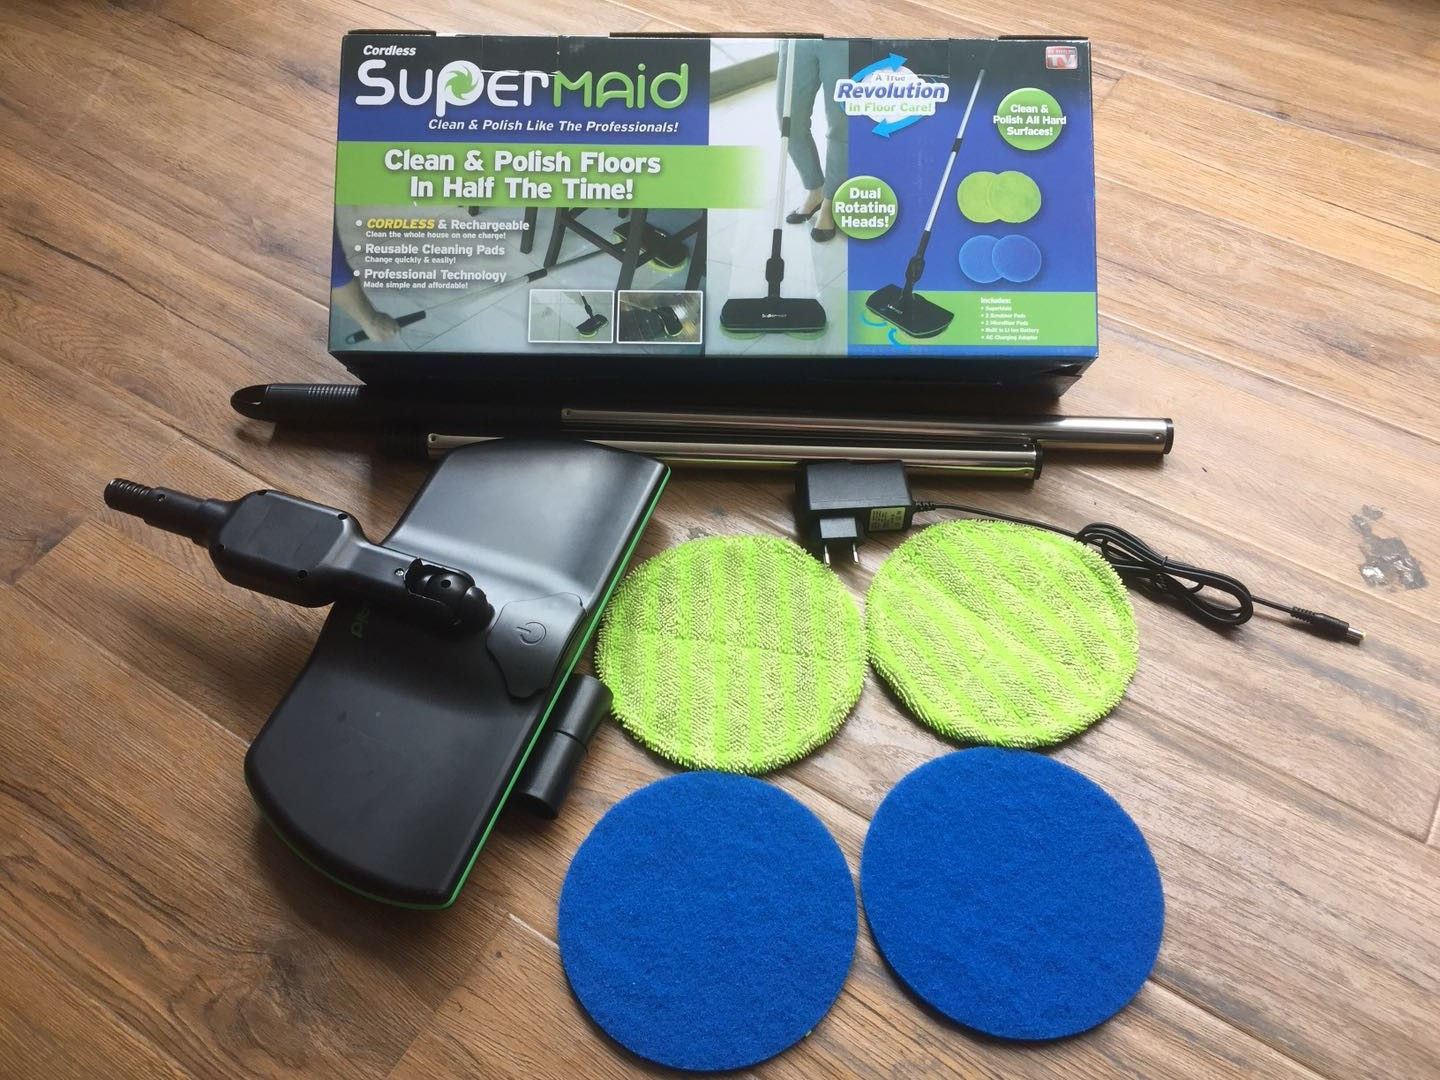 New Spin Maid Electric Mop Wireless Rotary Mop Rechargeable Sweeper Artifact